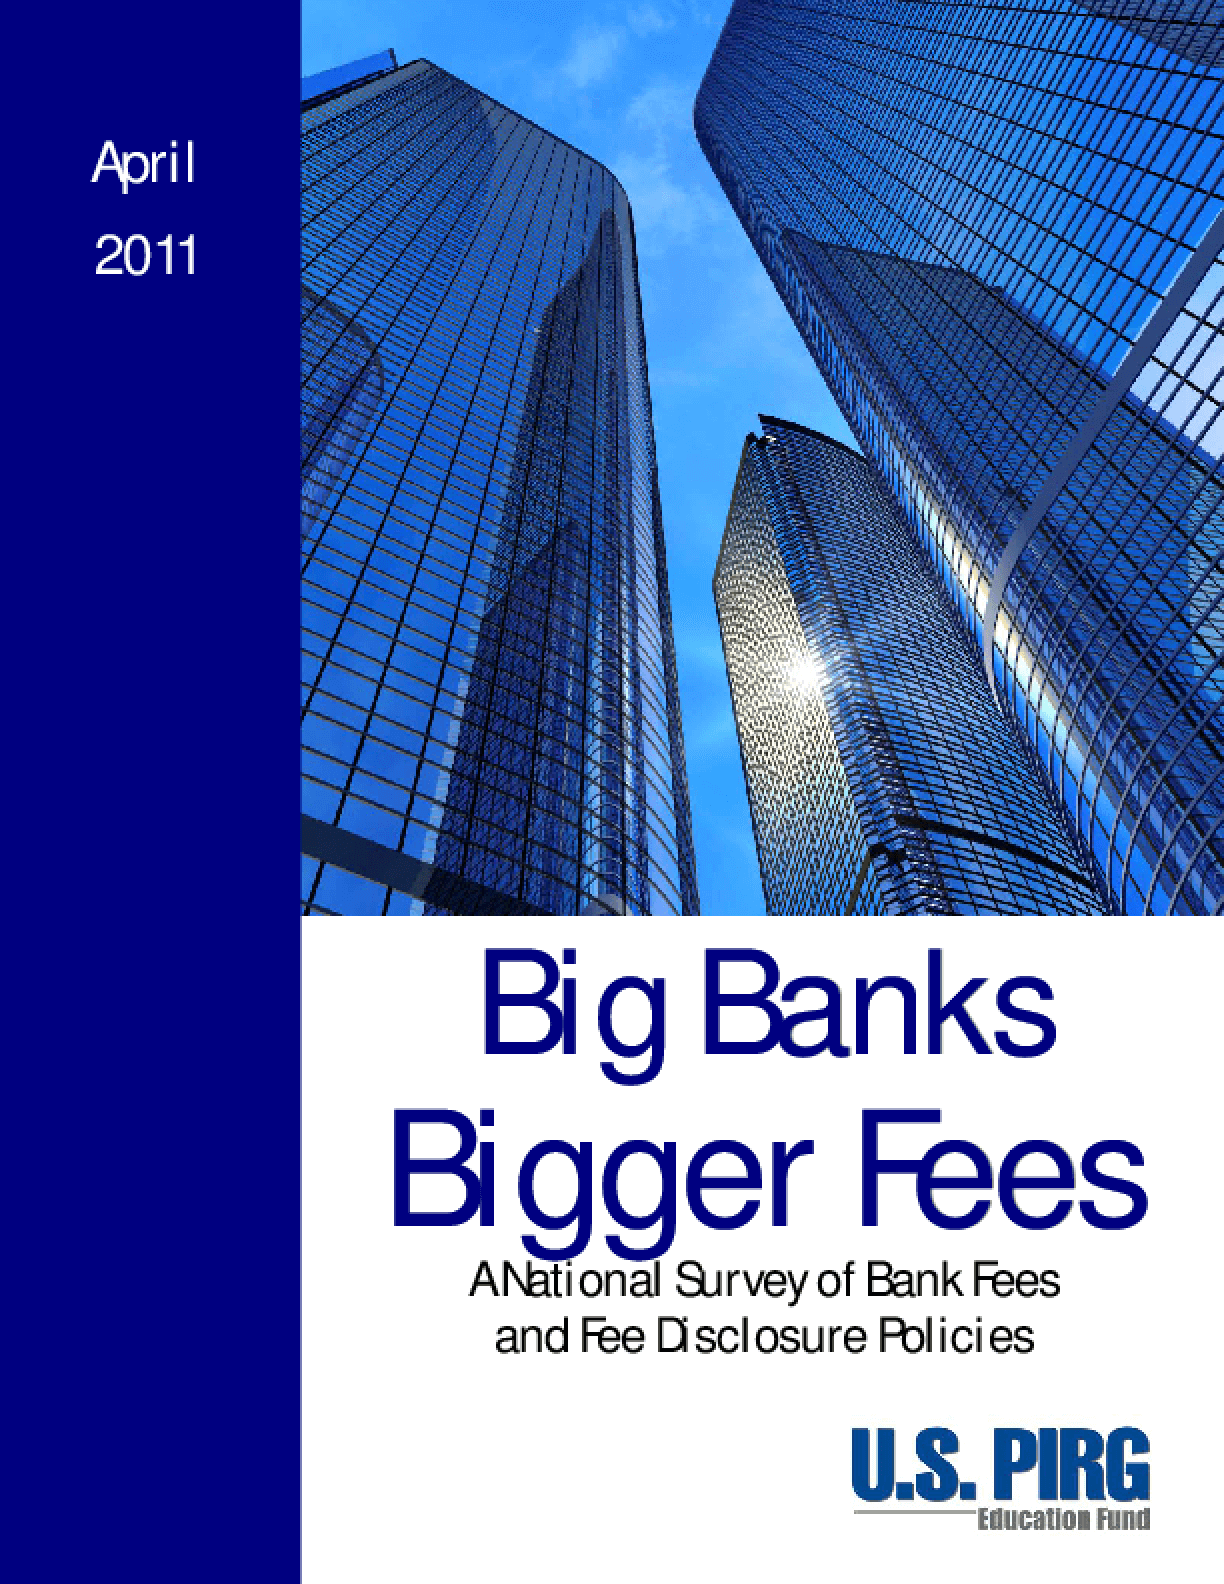 Big Banks, Bigger Fees: A National Survey of Bank Fees and Fee Disclosure Policies